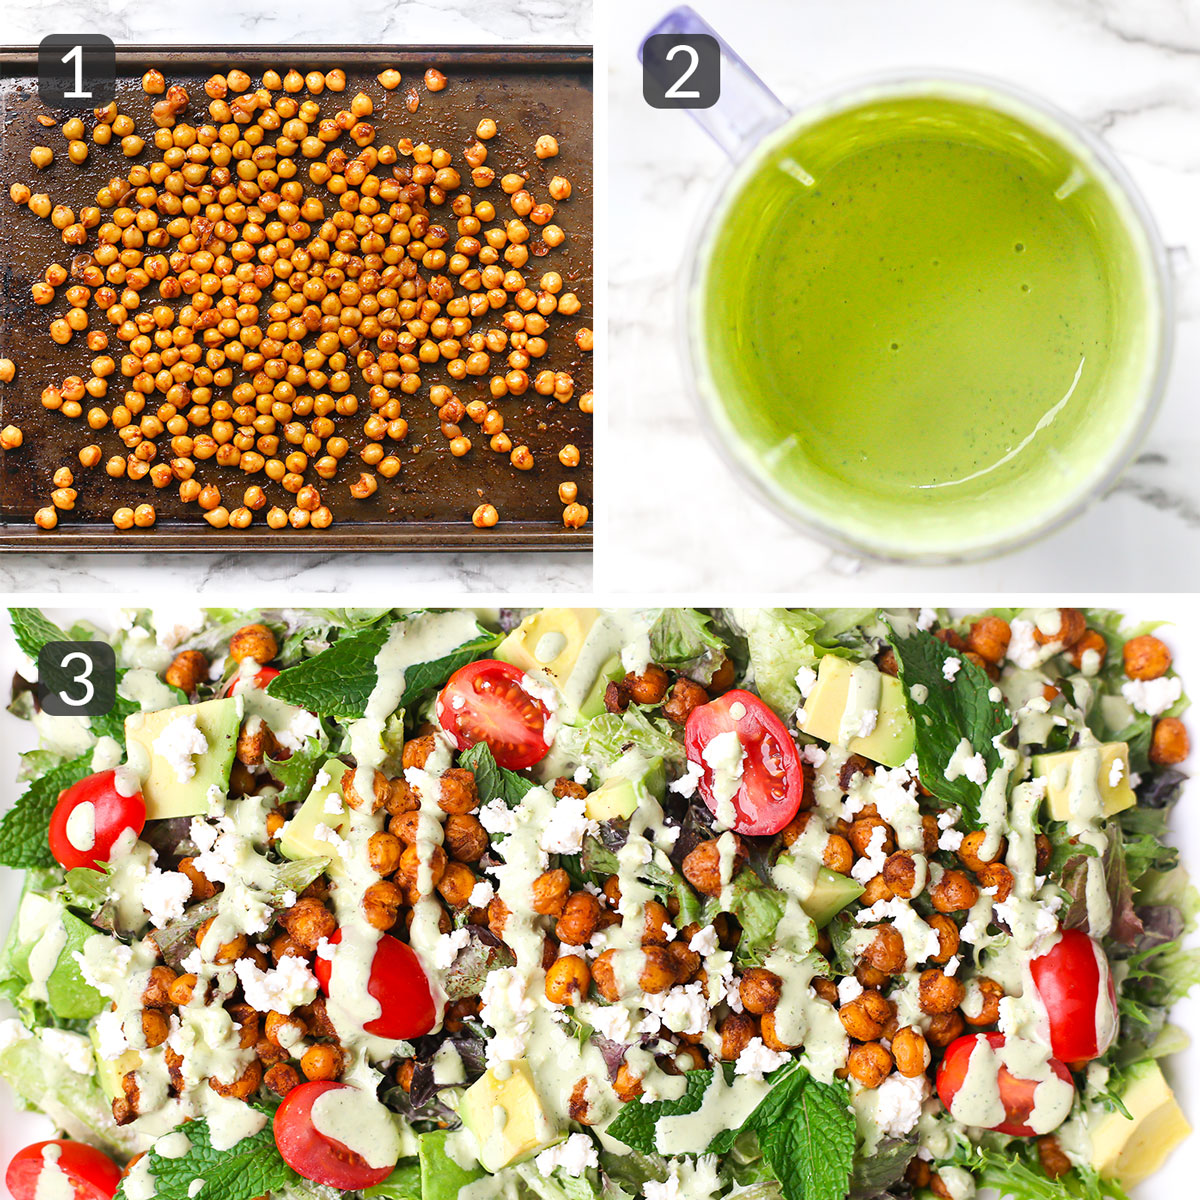 step photos showing how to make roasted chickpea salad